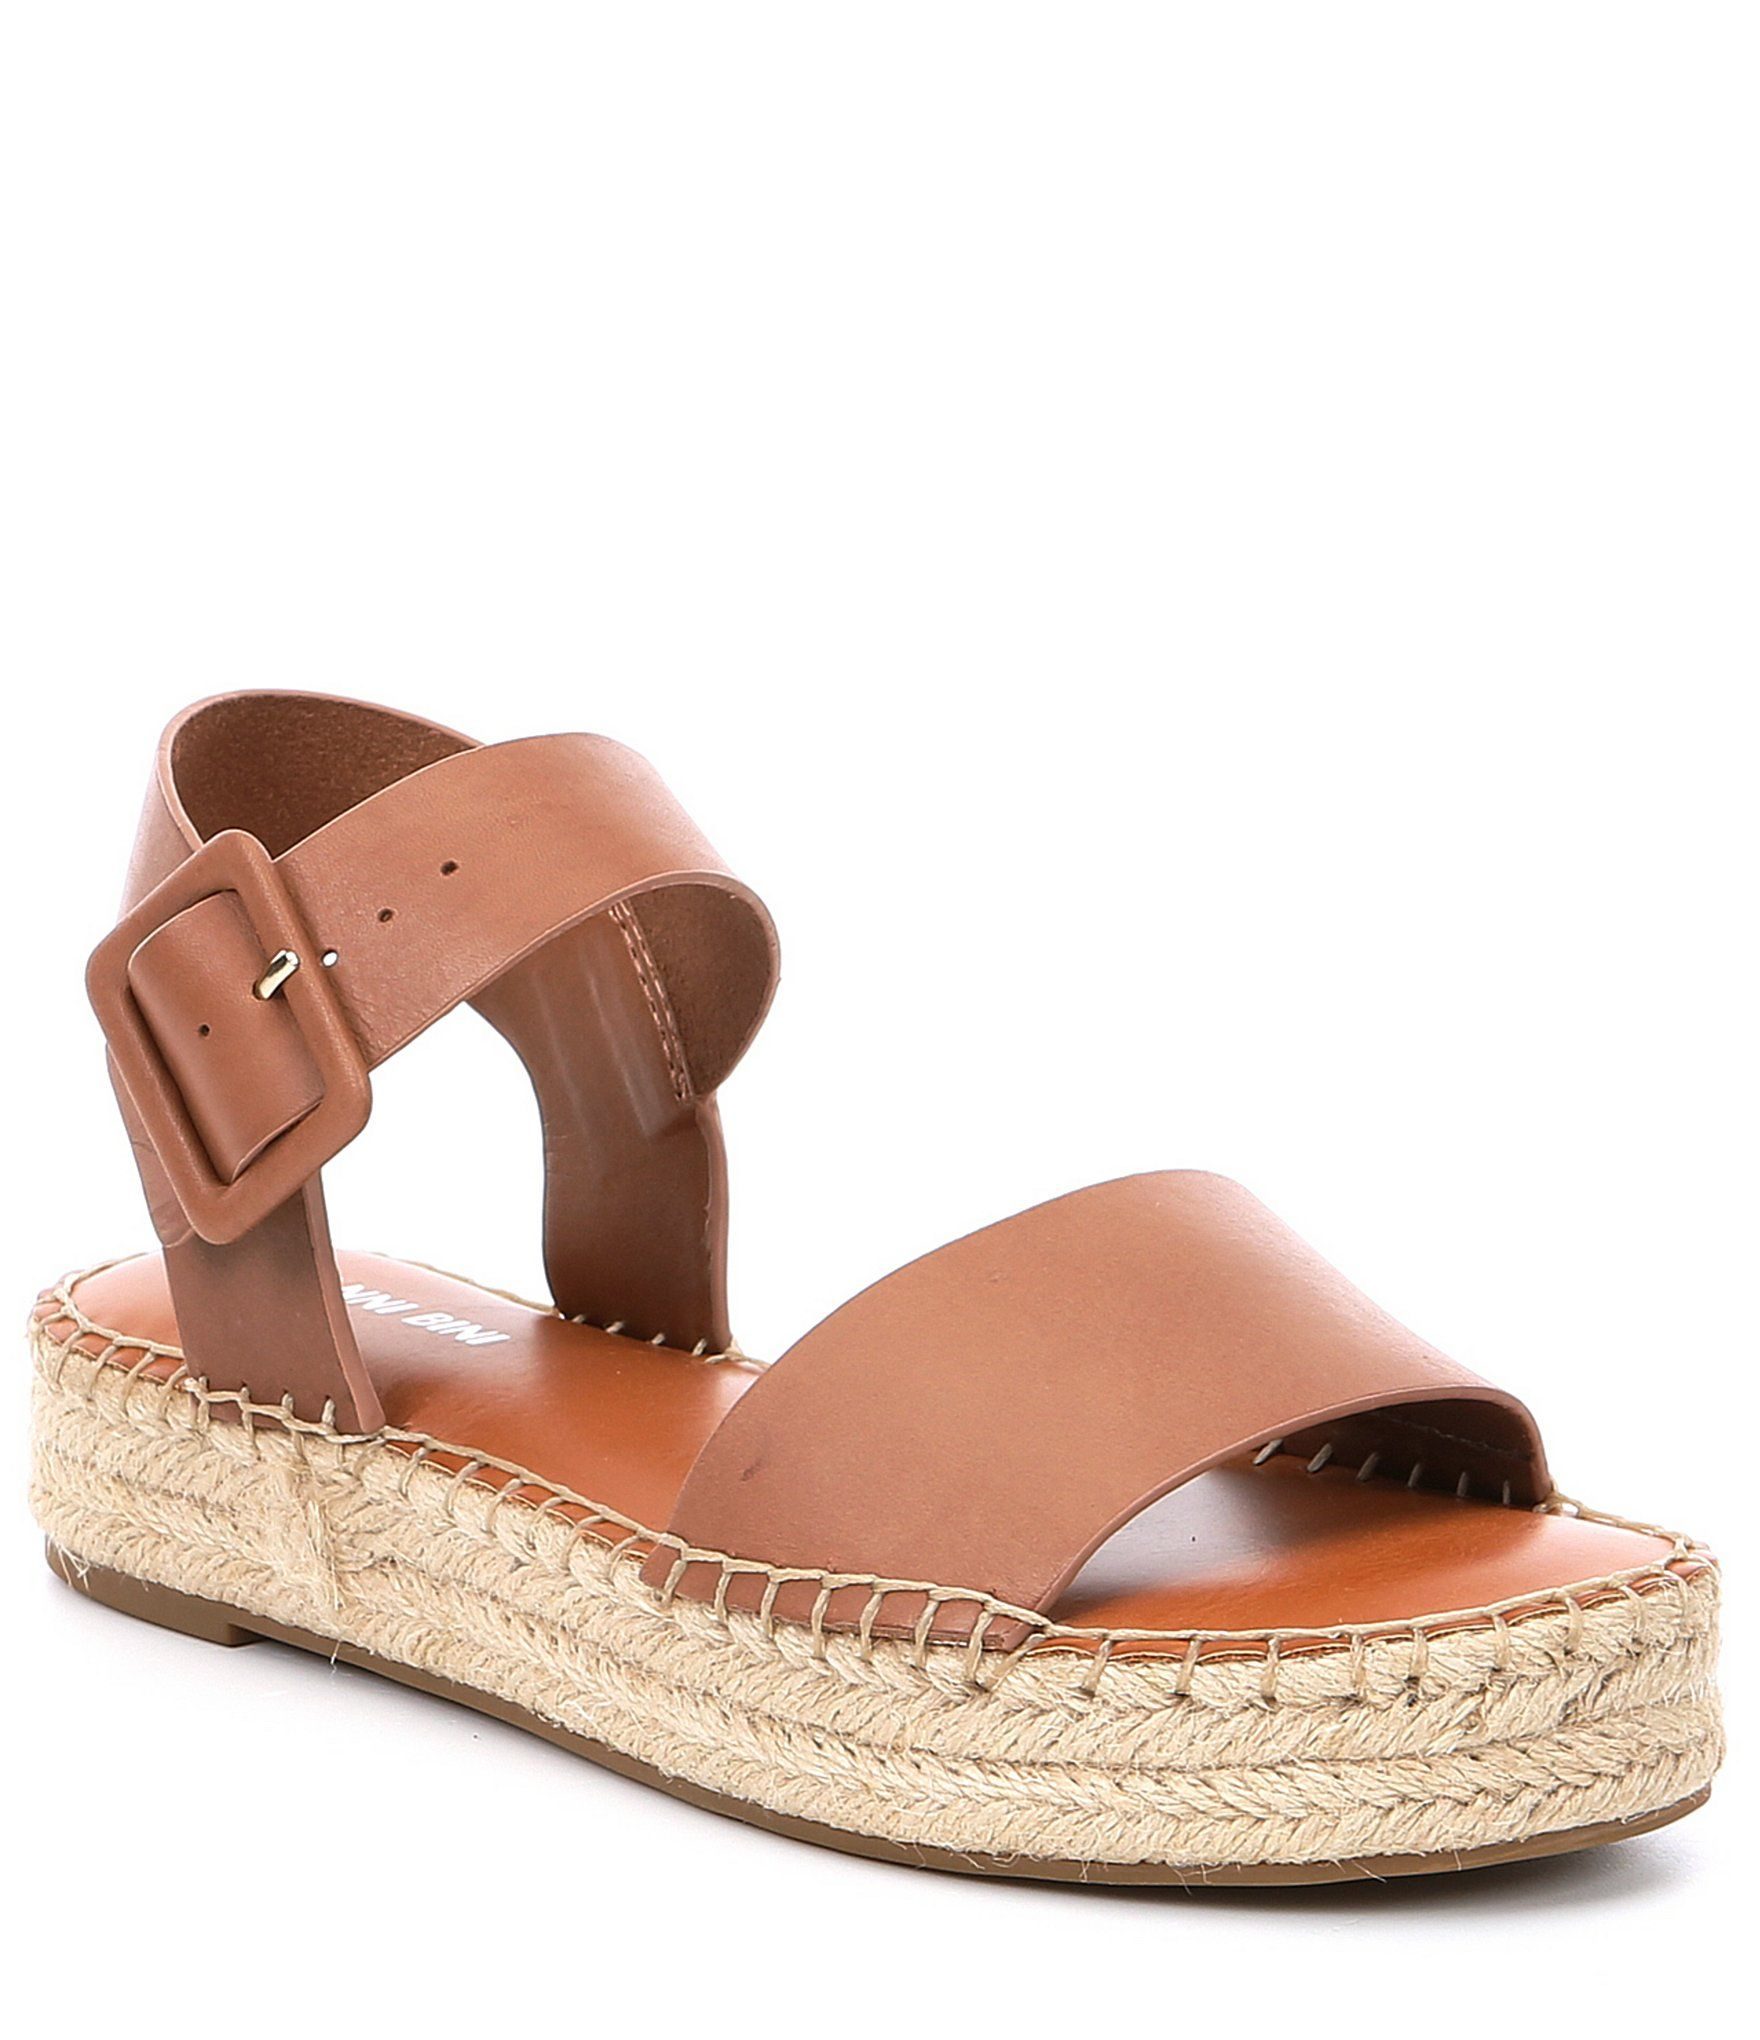 8ee98c5e68c Shop for Gianni Bini Kaygan Leather Espadrille Flatform Sandals at ...